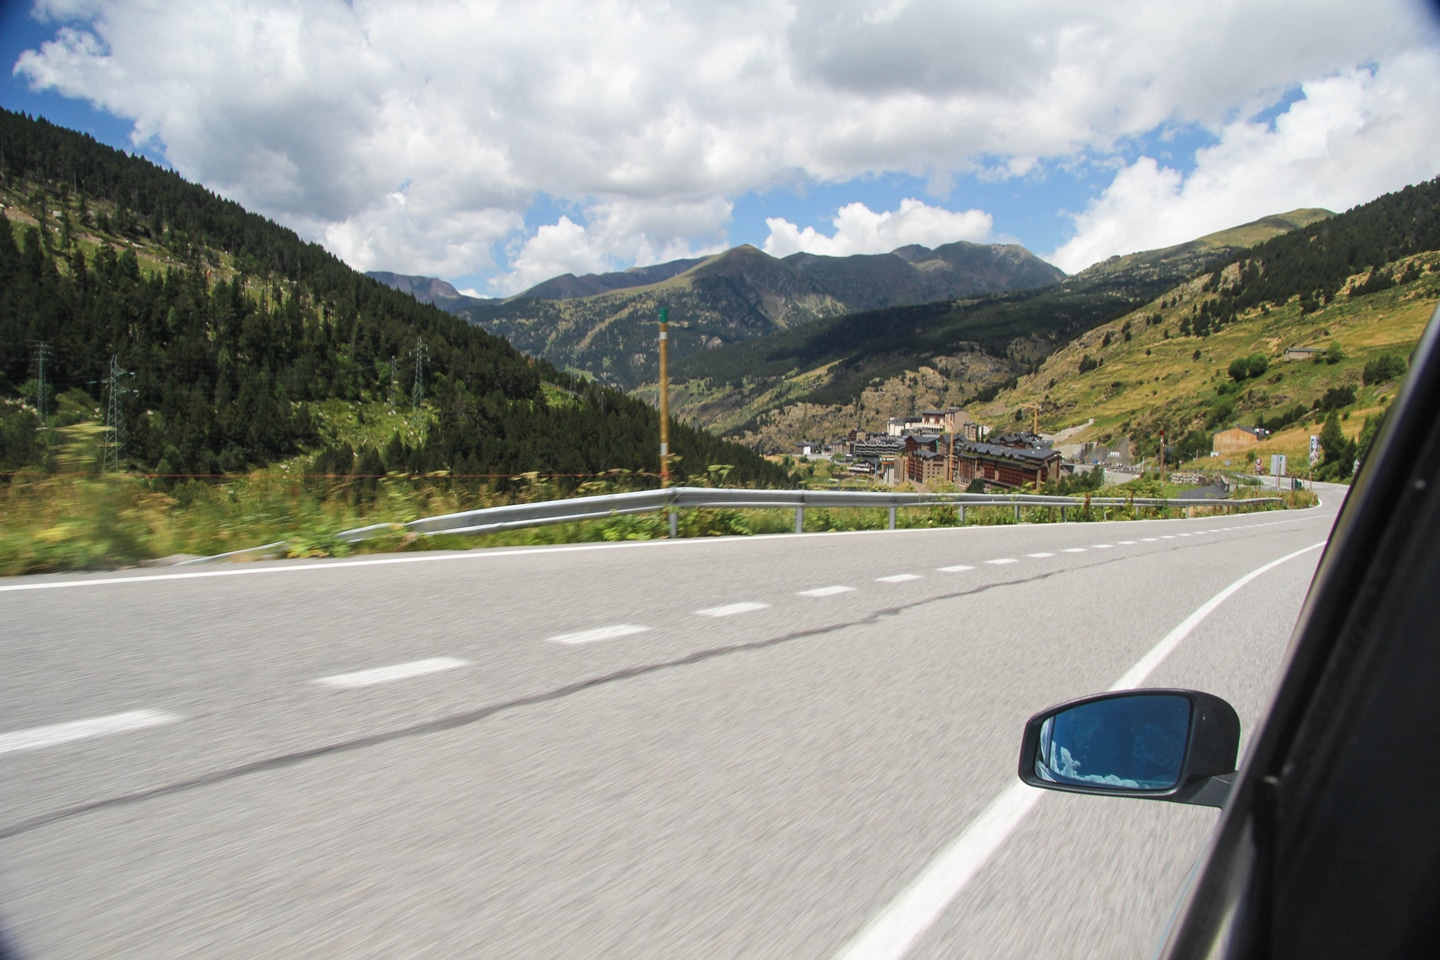 Roadtrip to Andorra